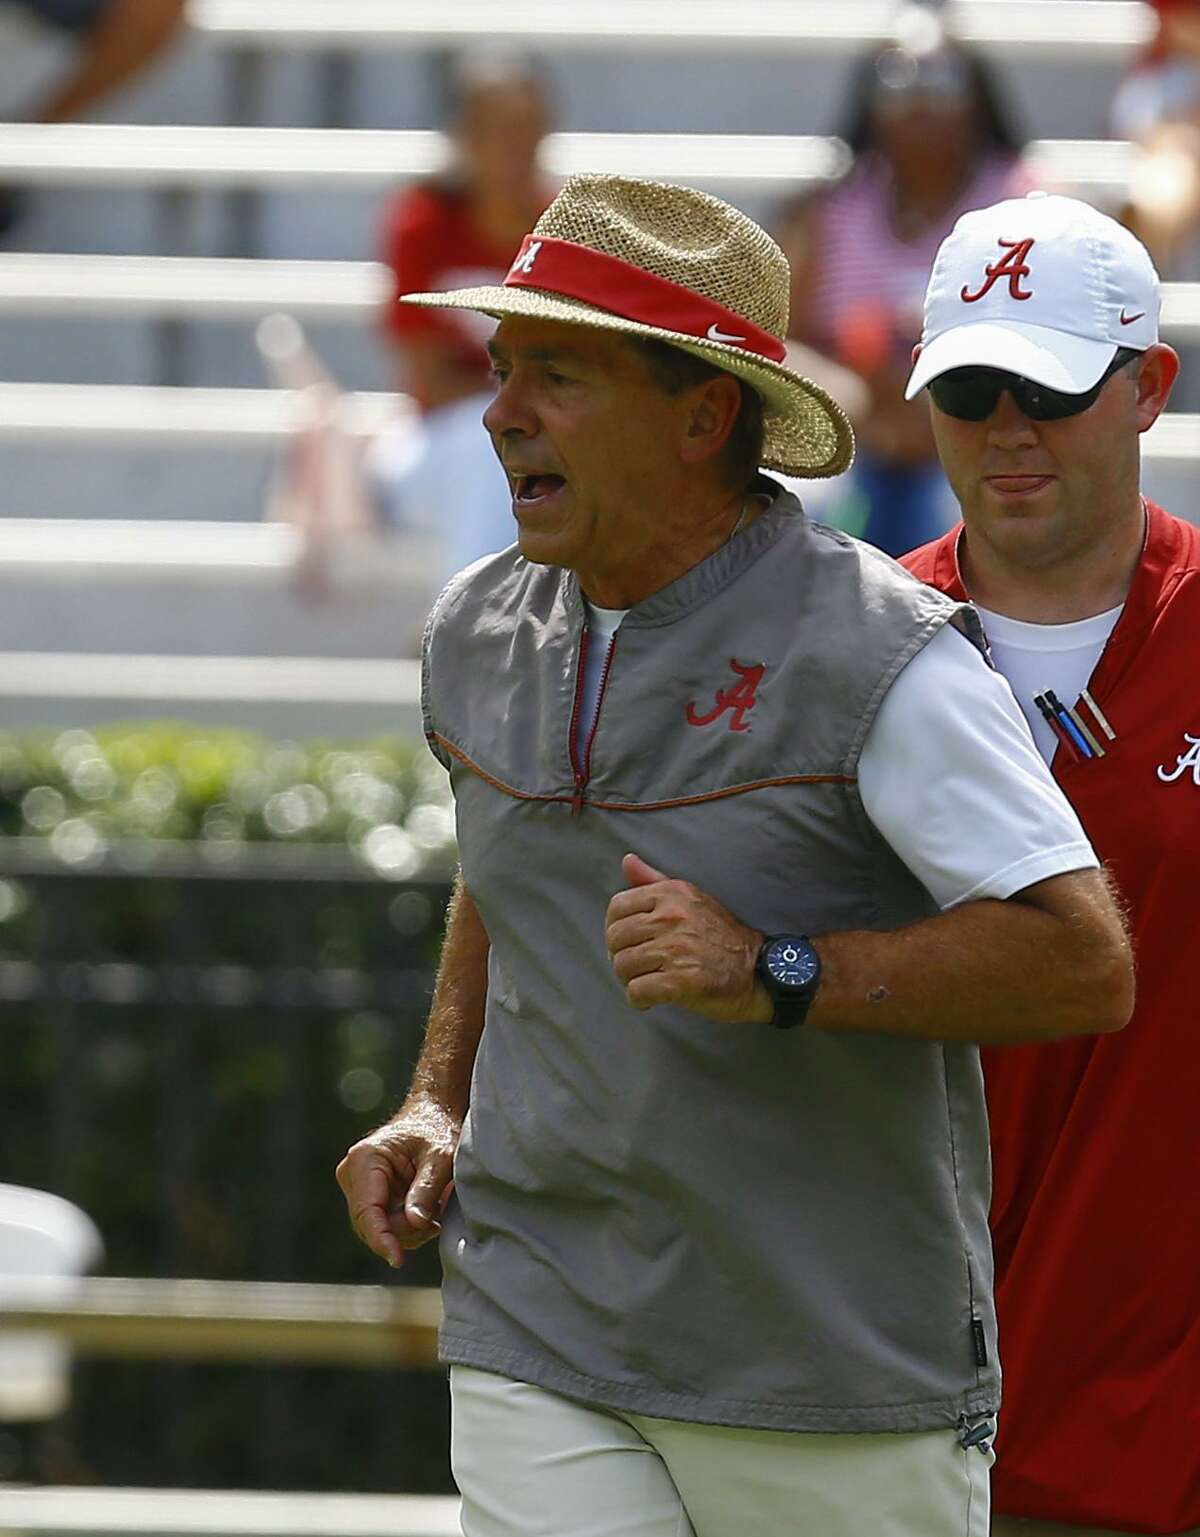 The Register's Joe Morelli is banking on head coach Nick Saban and Alabama to repeat as national champions.